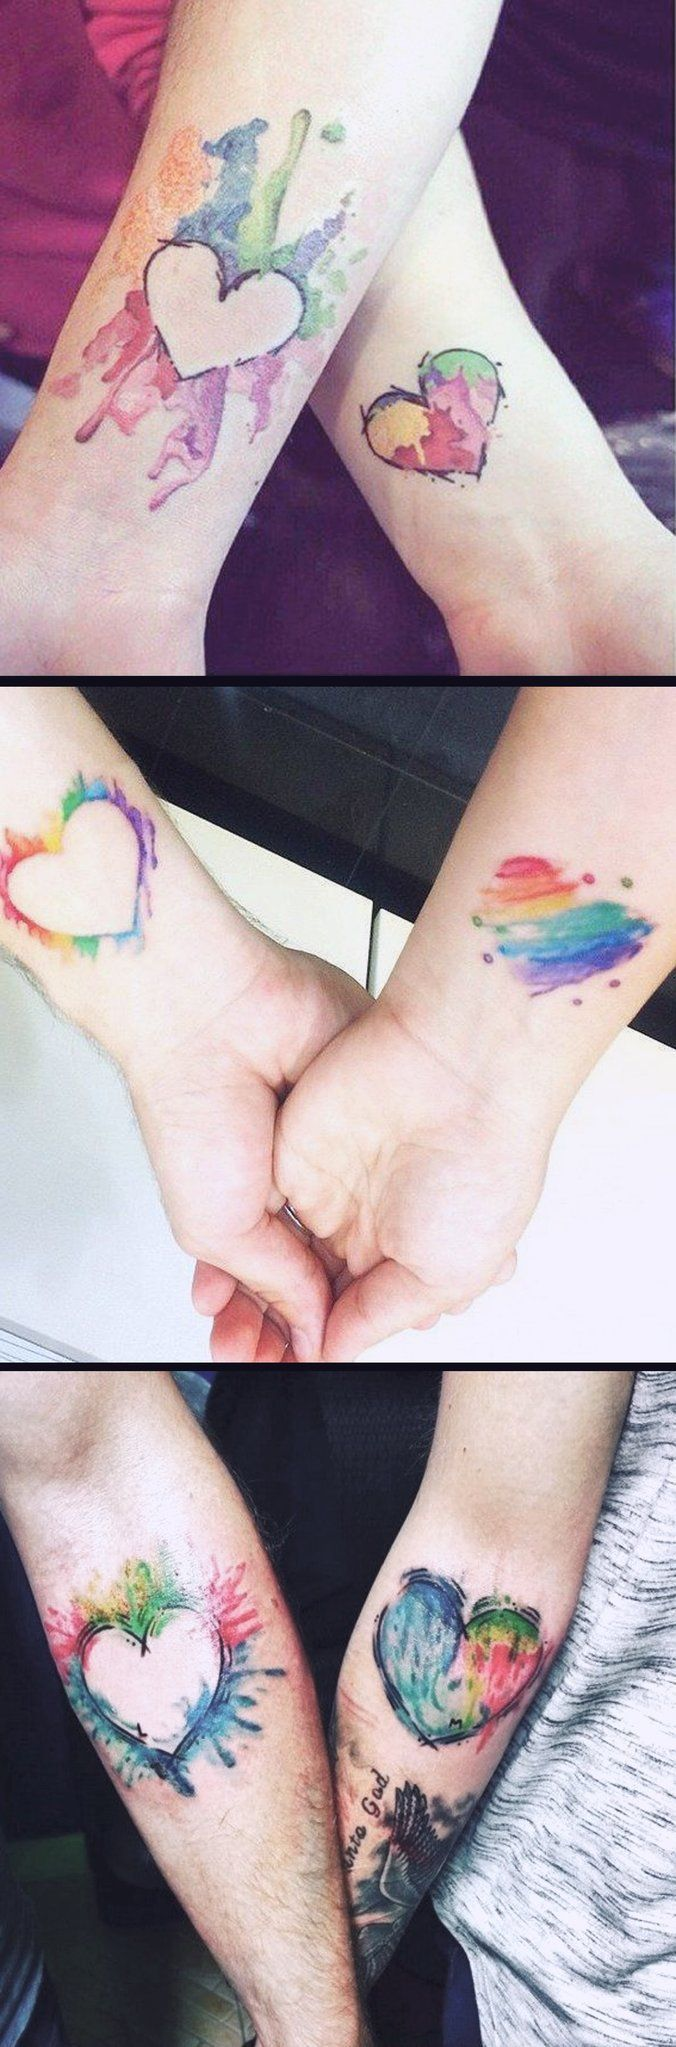 Matching Watercolor Heart Tattoo Ideas Small Rainbow Soul Wrist